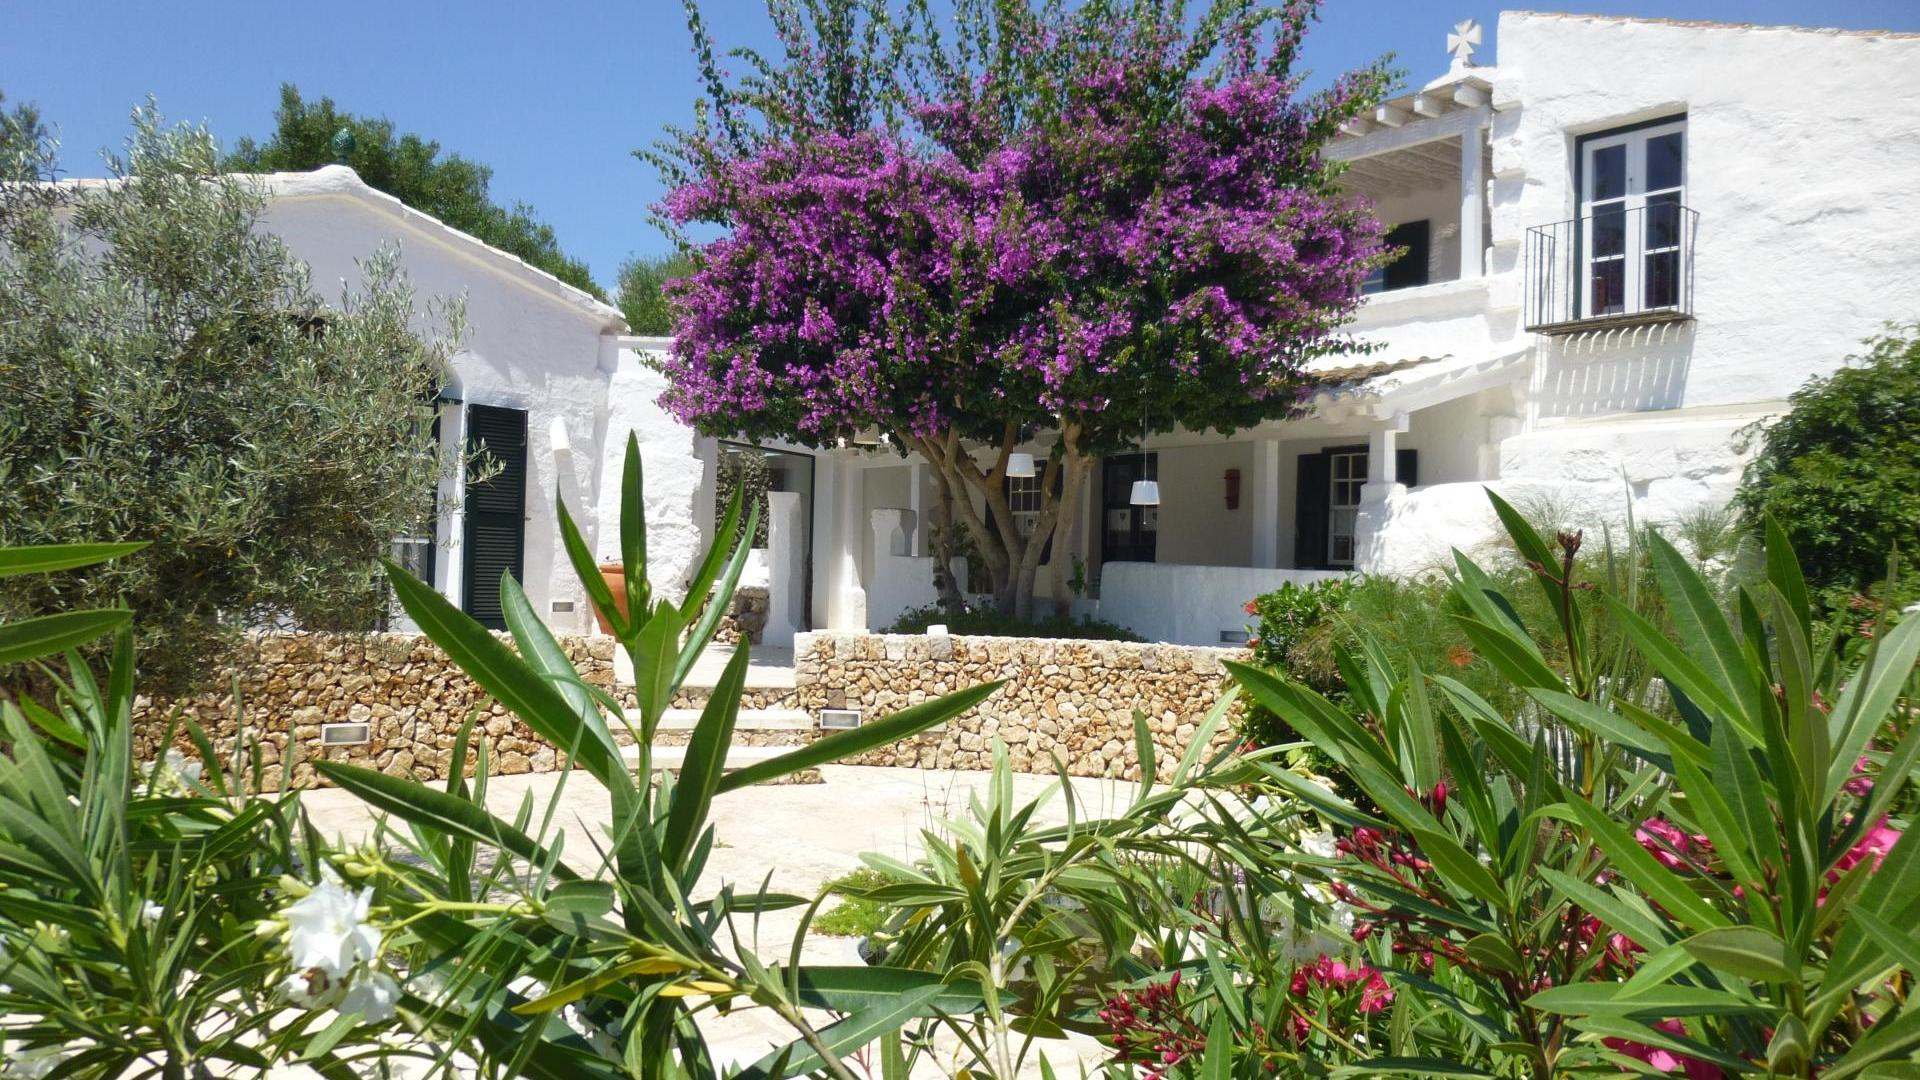 6 Bedroom Private villa in Balearic Islands, Spain